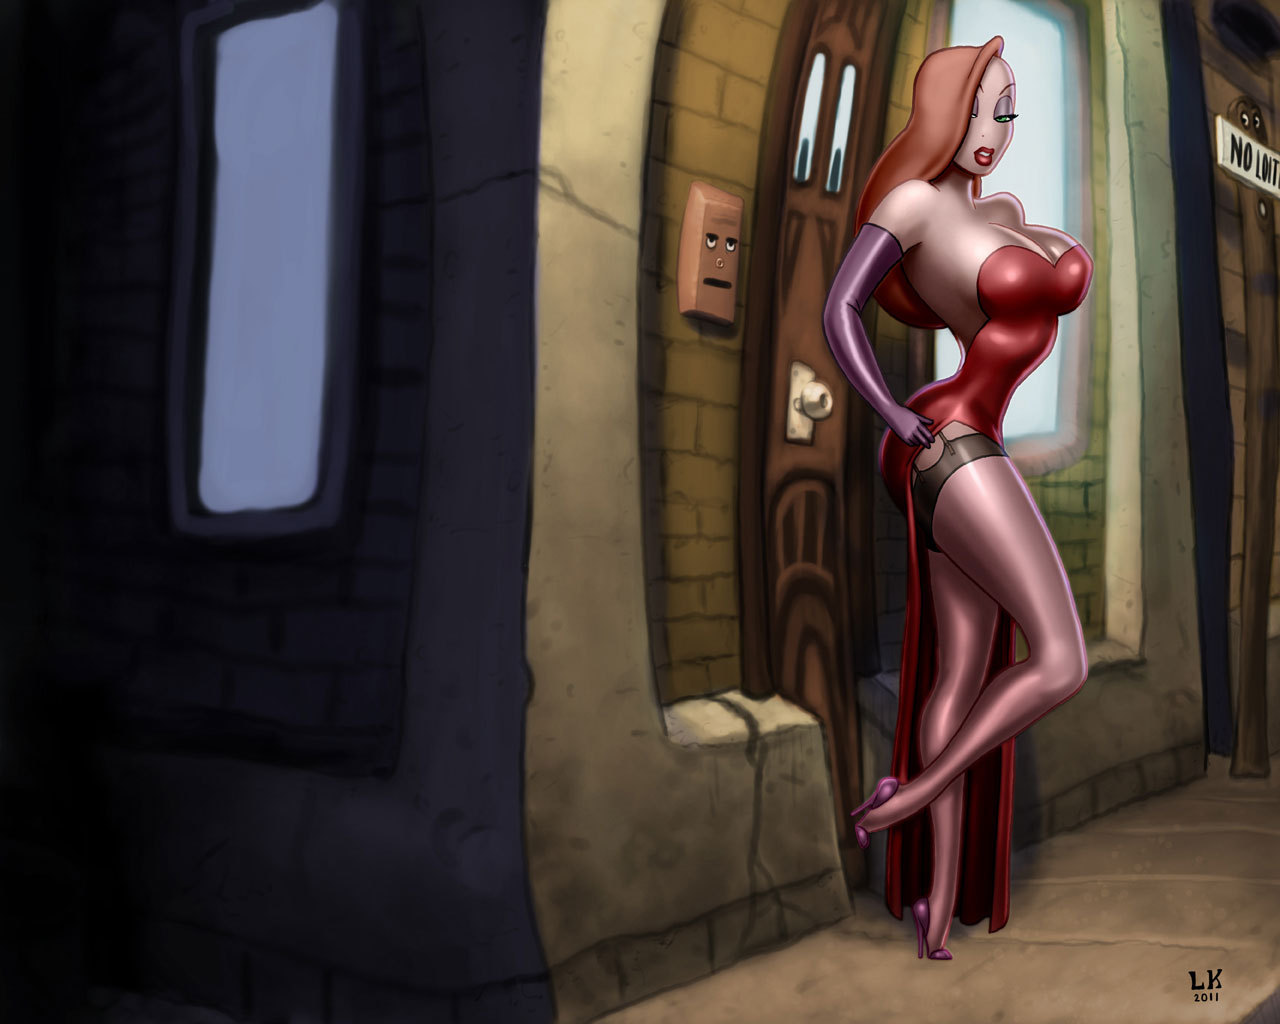 toon jessica naked pic